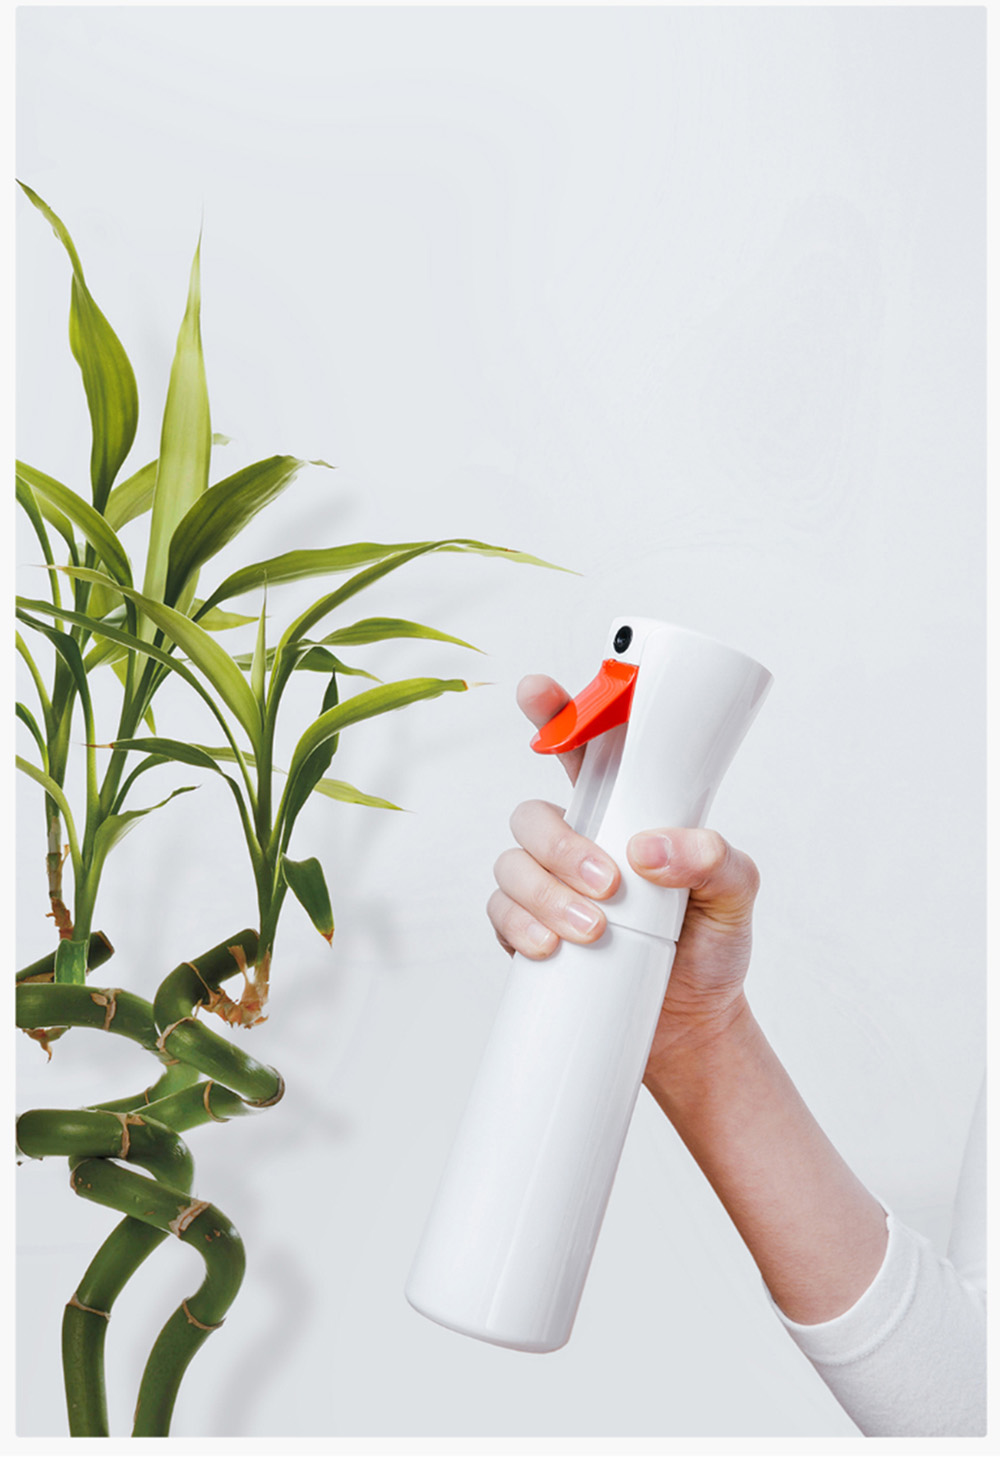 YG - 01 Time Delay Spray Bottle from Xiaomi Youpin- Milk White